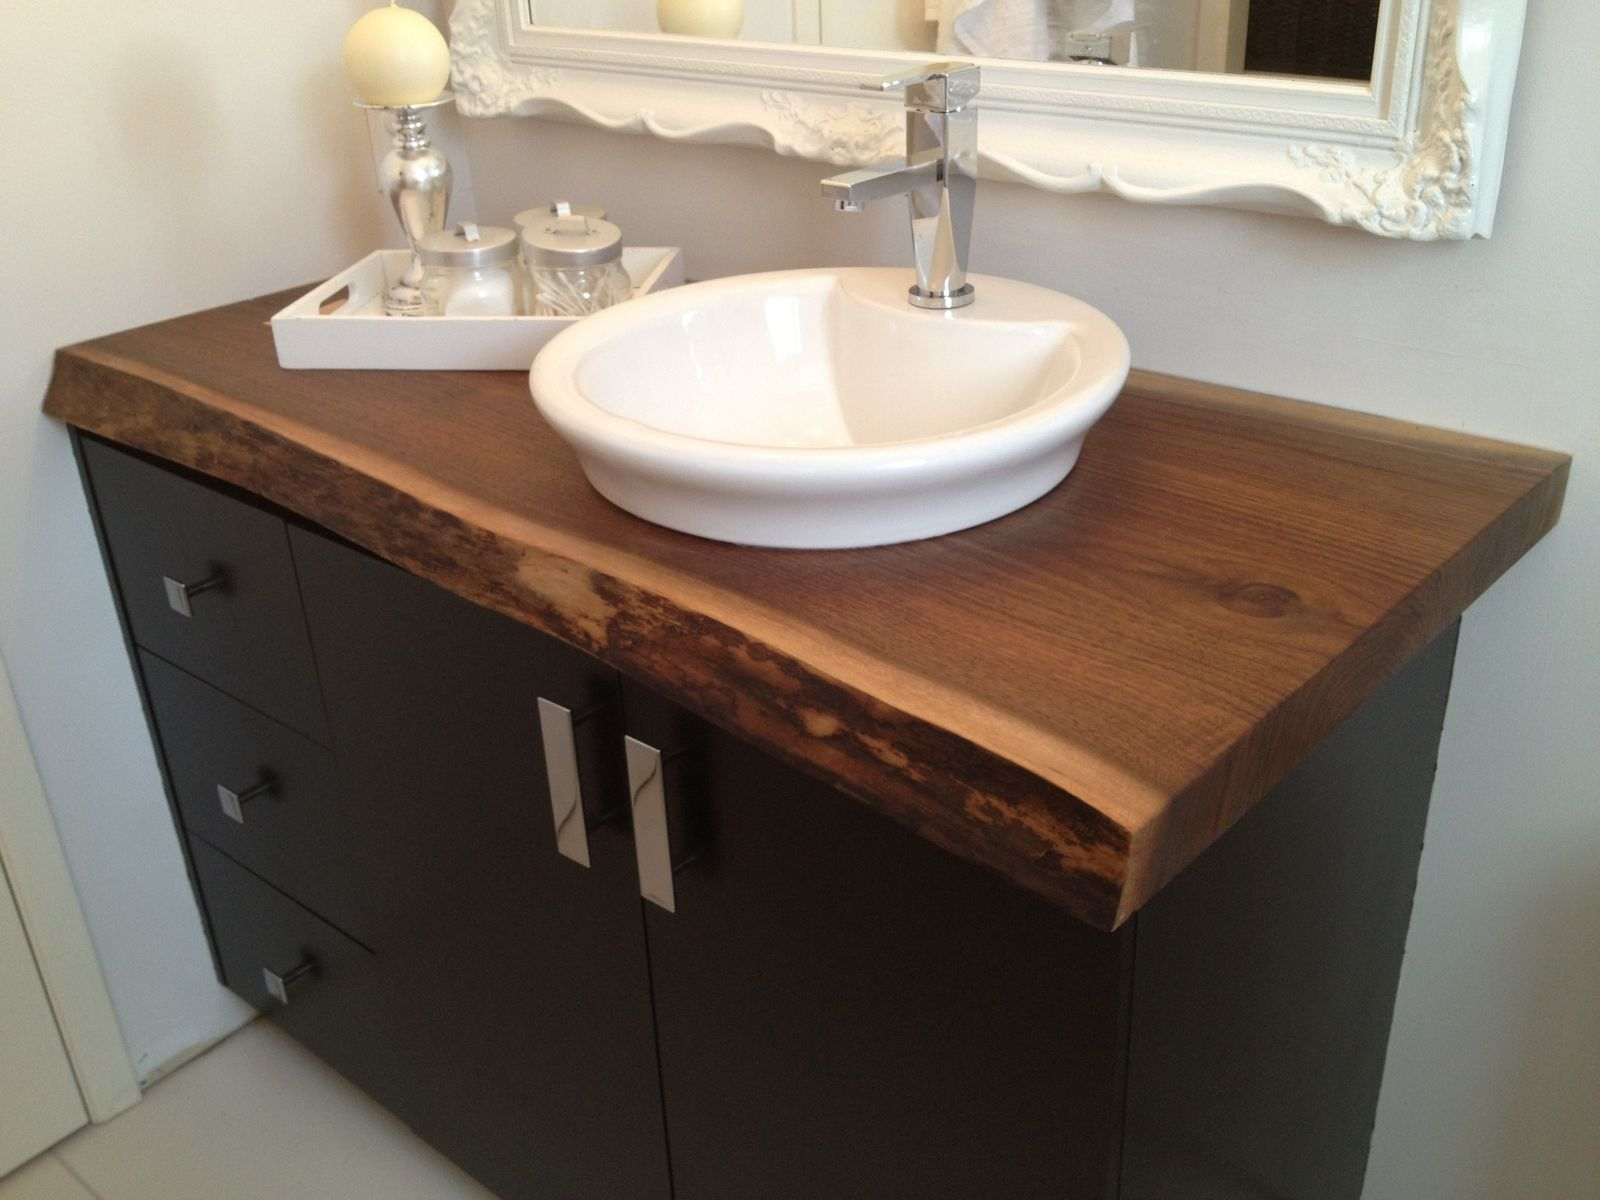 Bathroom Sinks Countertops : home decor bathroom sinks live edge black walnut bathroom countertop